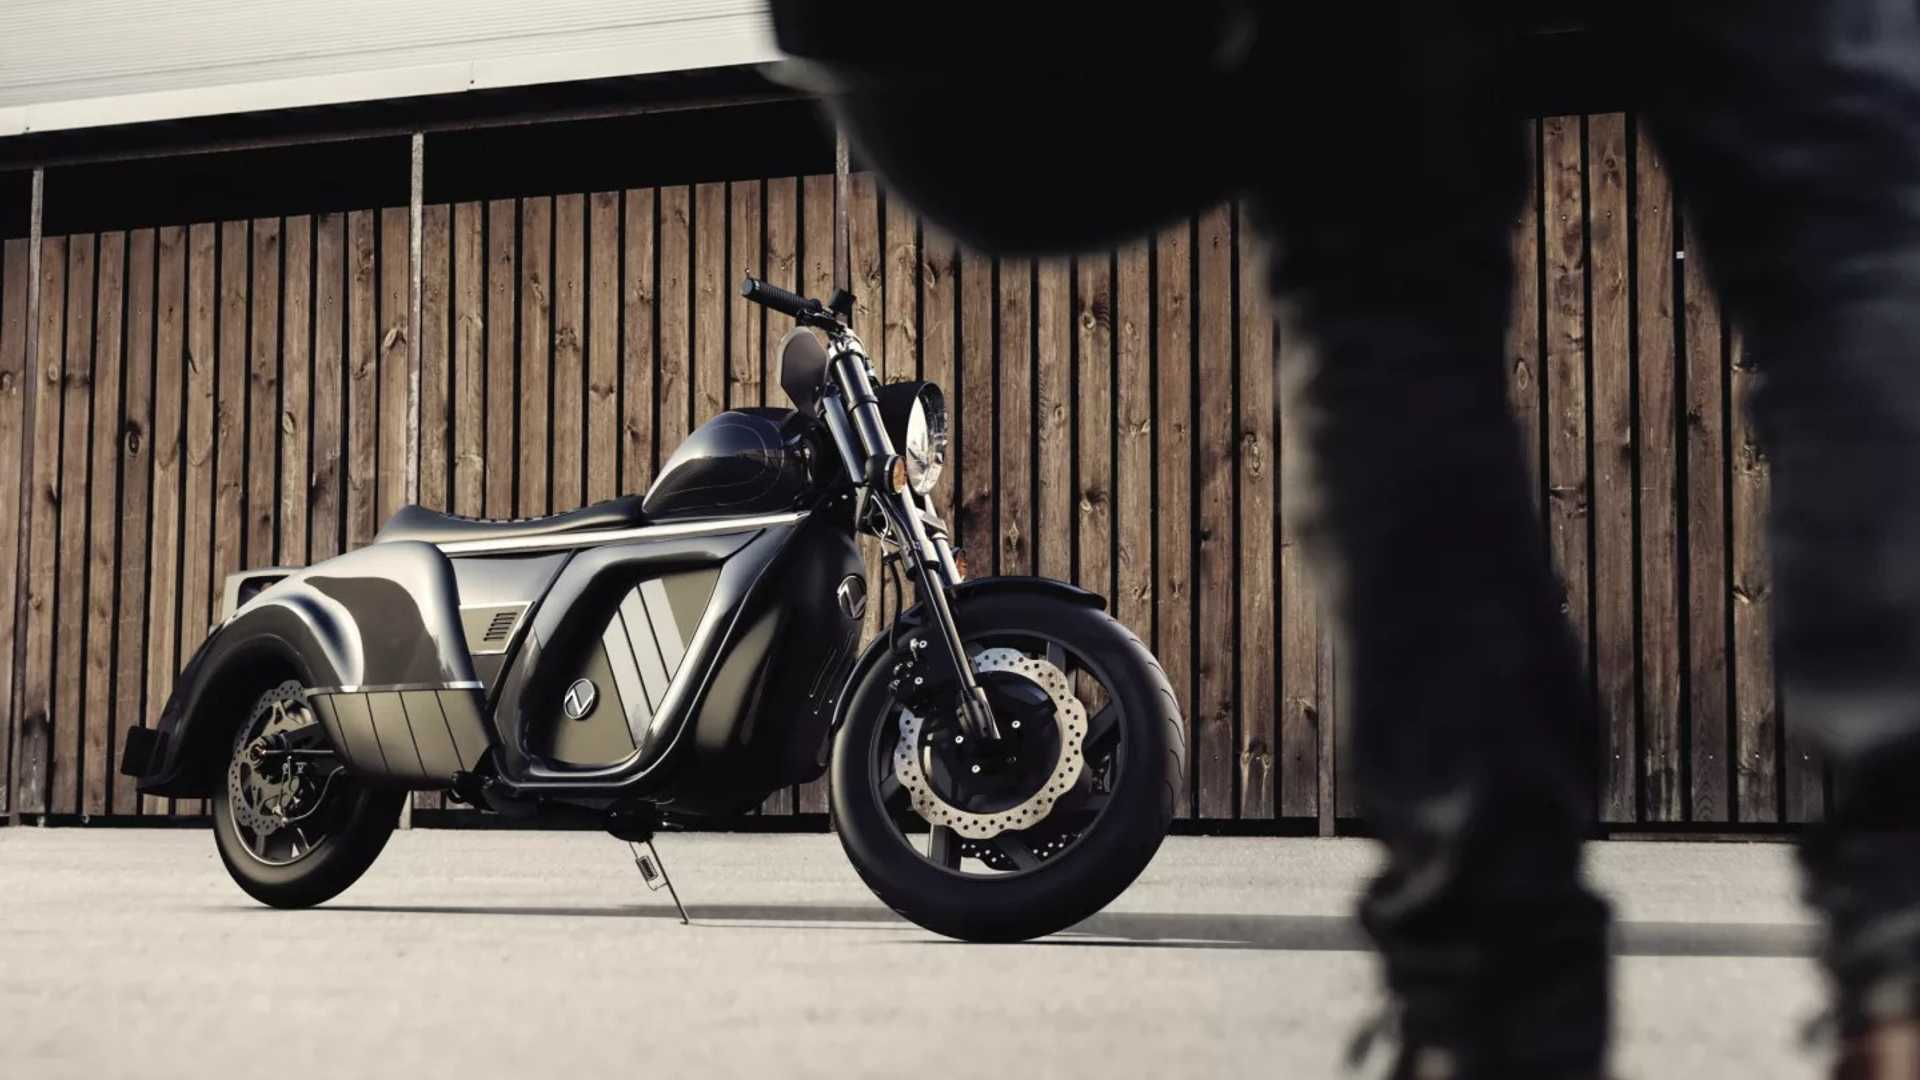 Zaiser promises a range of 300 miles in its electric cycle - Autobala